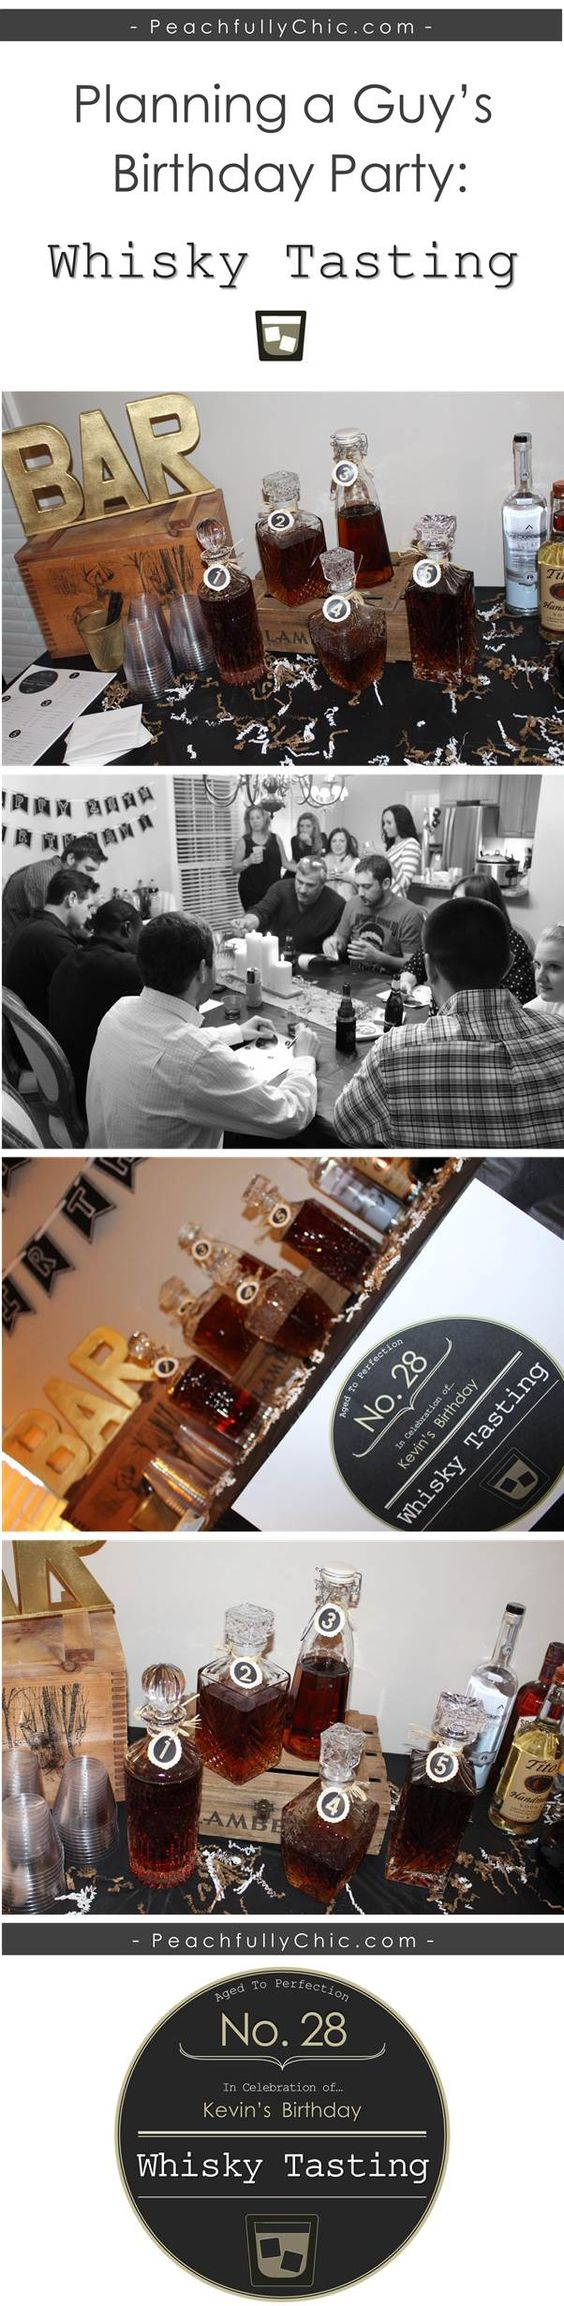 Planning A Guy's Birthday Party: Whiskey Tasting (manly party theme - birthday ideas)